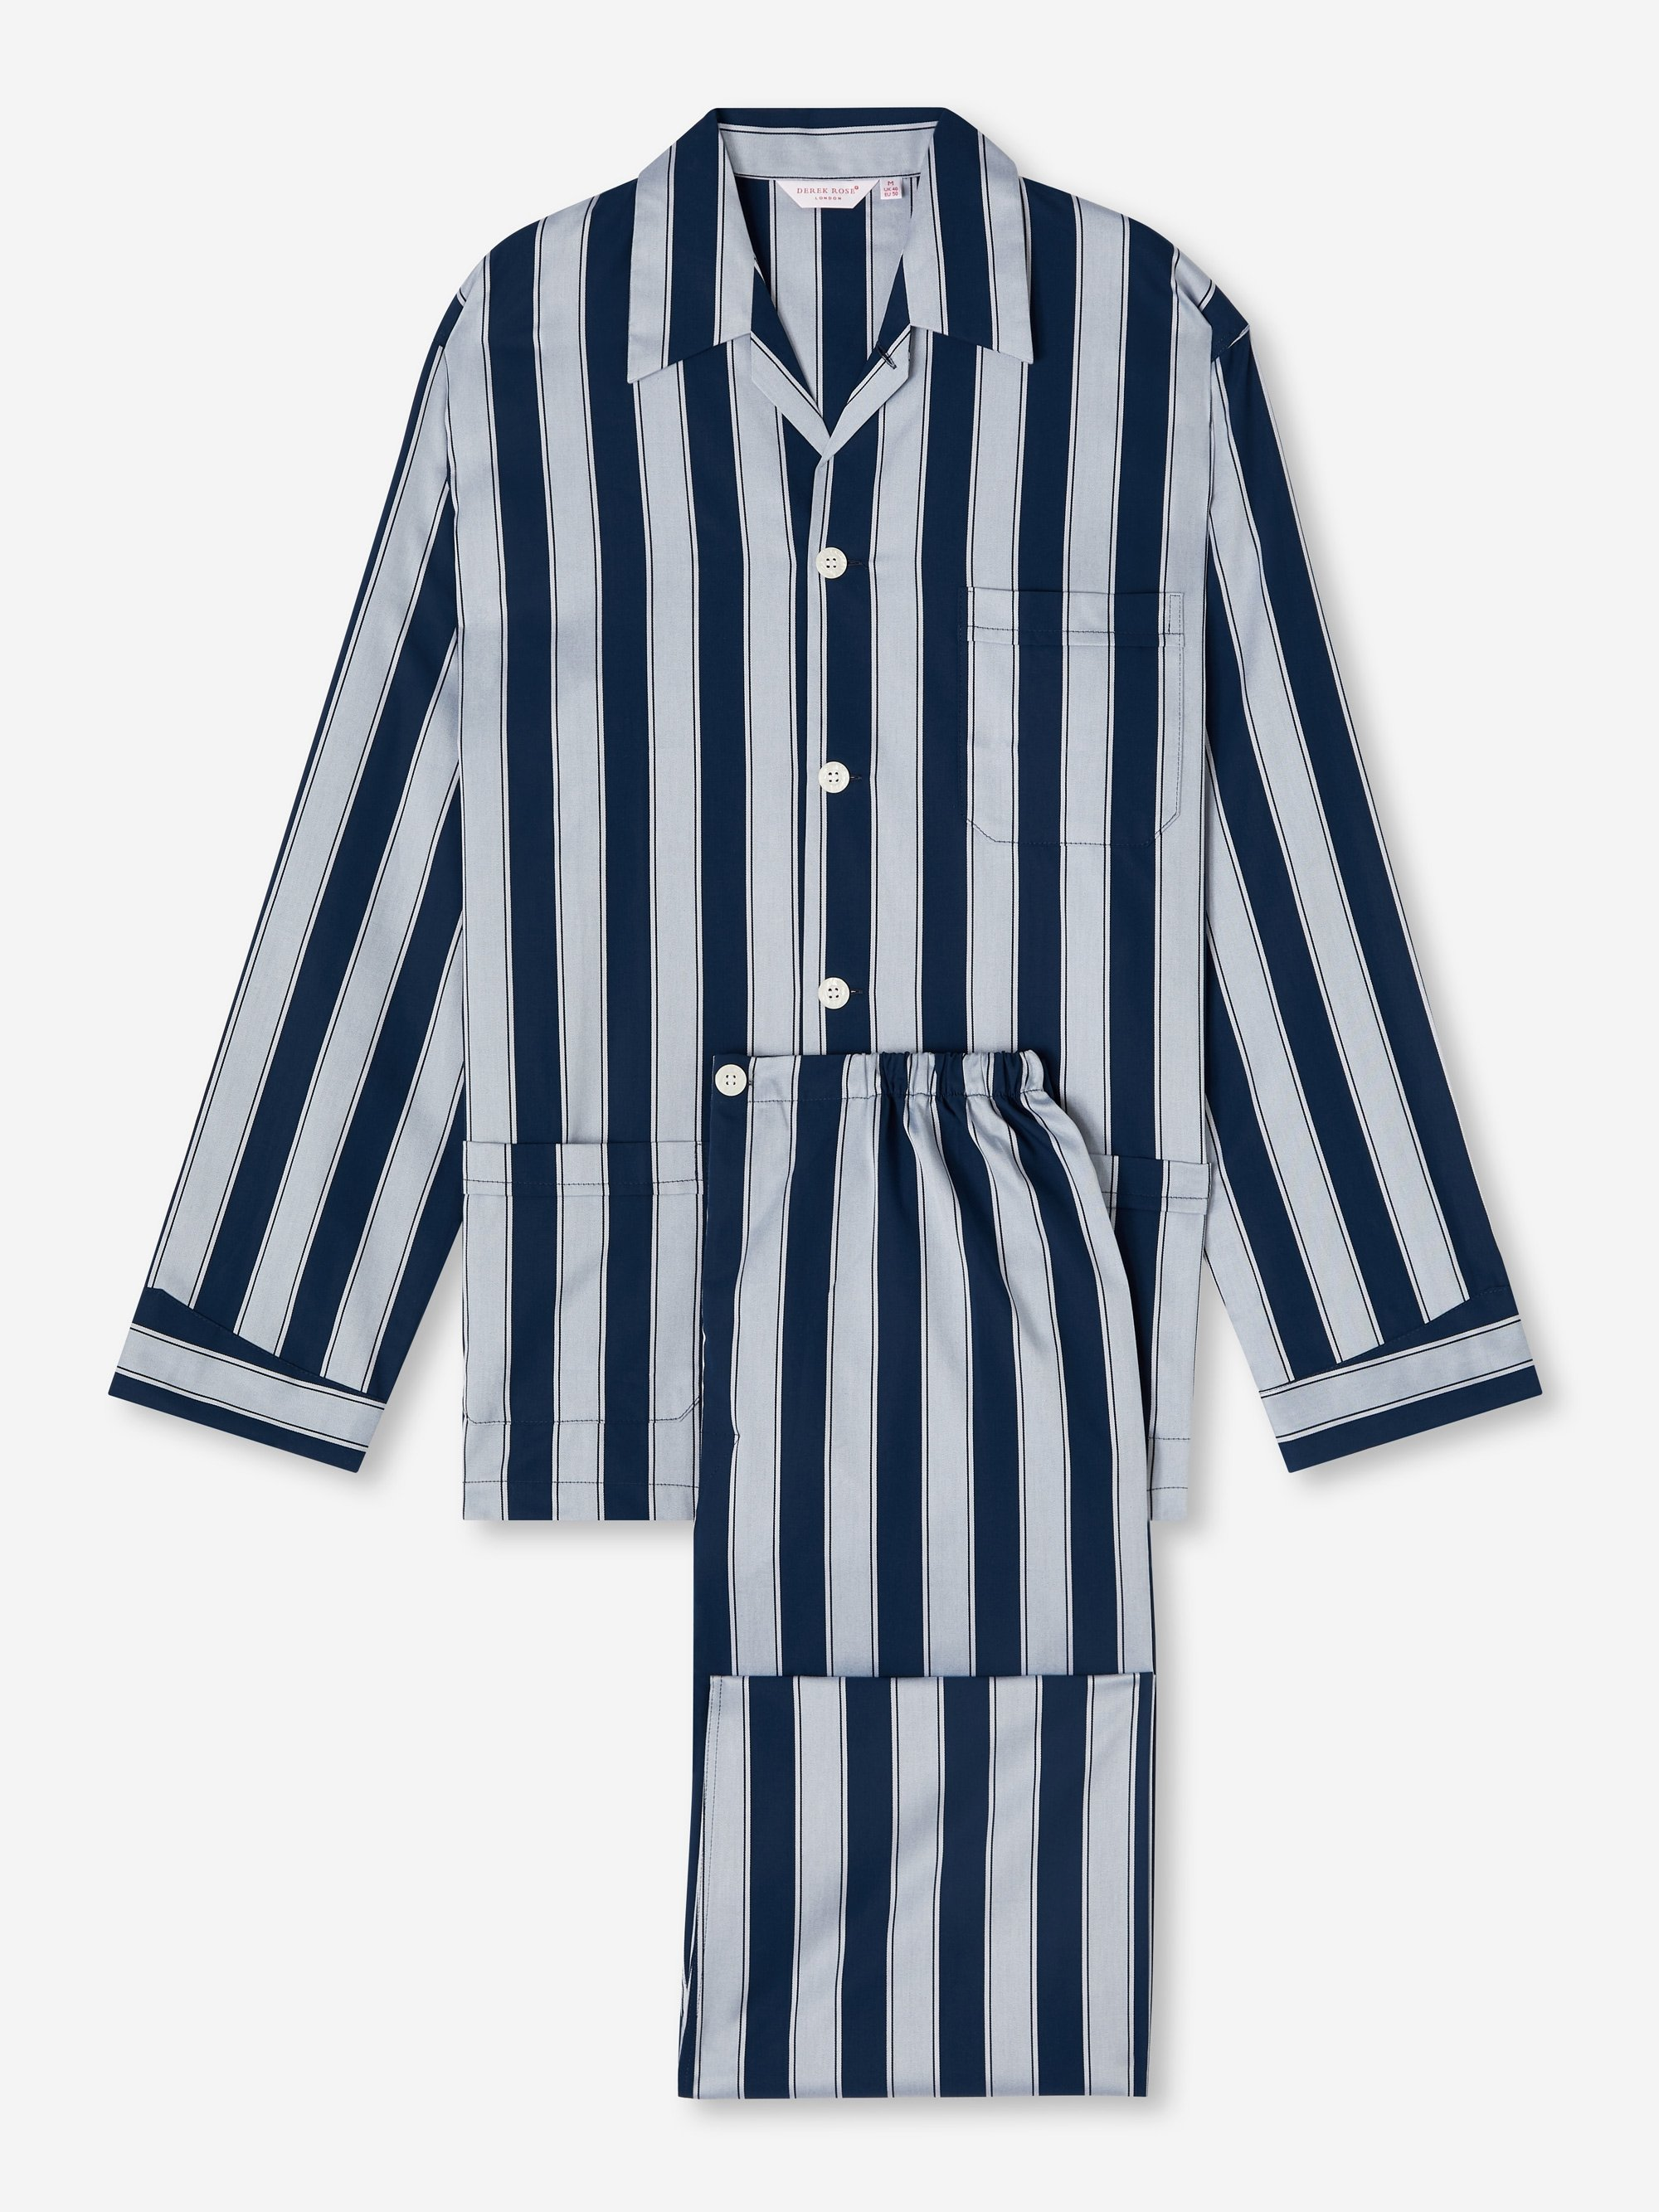 Men's Classic Fit Pyjamas Royal 216 Cotton Satin Stripe Navy